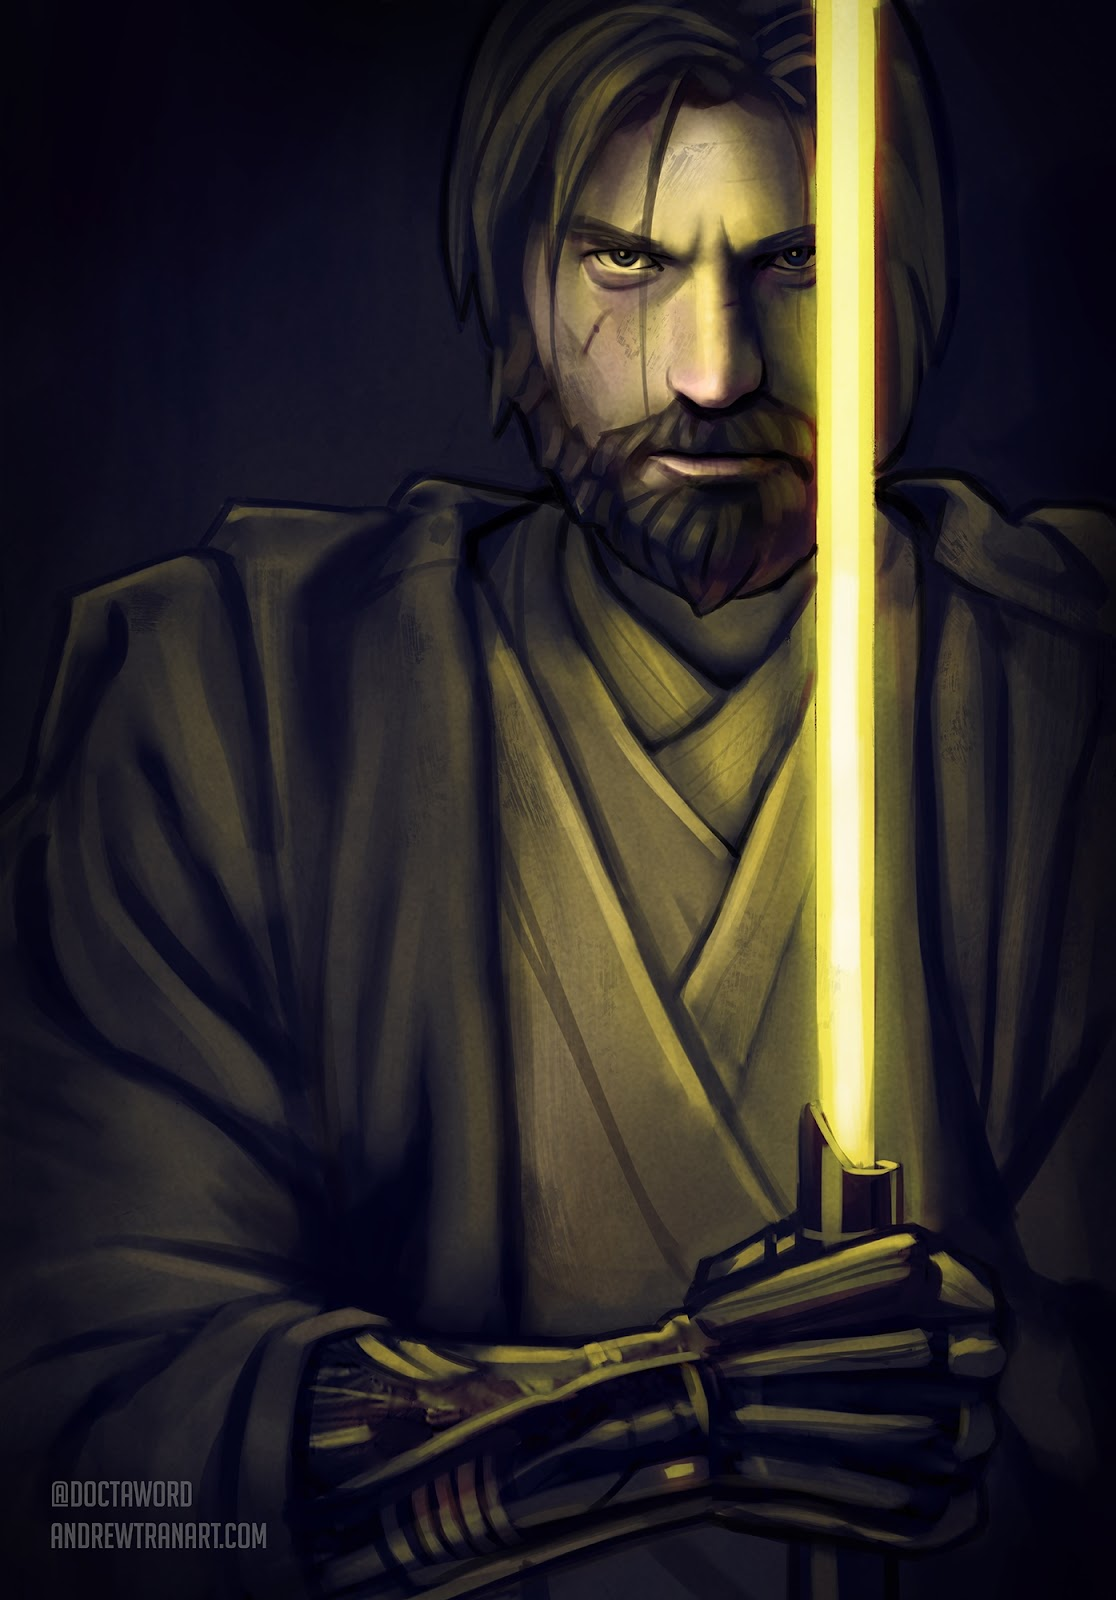 03-Jaime-Lannister-Nikolaj-Coster-Waldau-Andrew-D-Tran-Doctaword-Star-Wars-and-Game-of-Thrones-Mashup-www-designstack-co